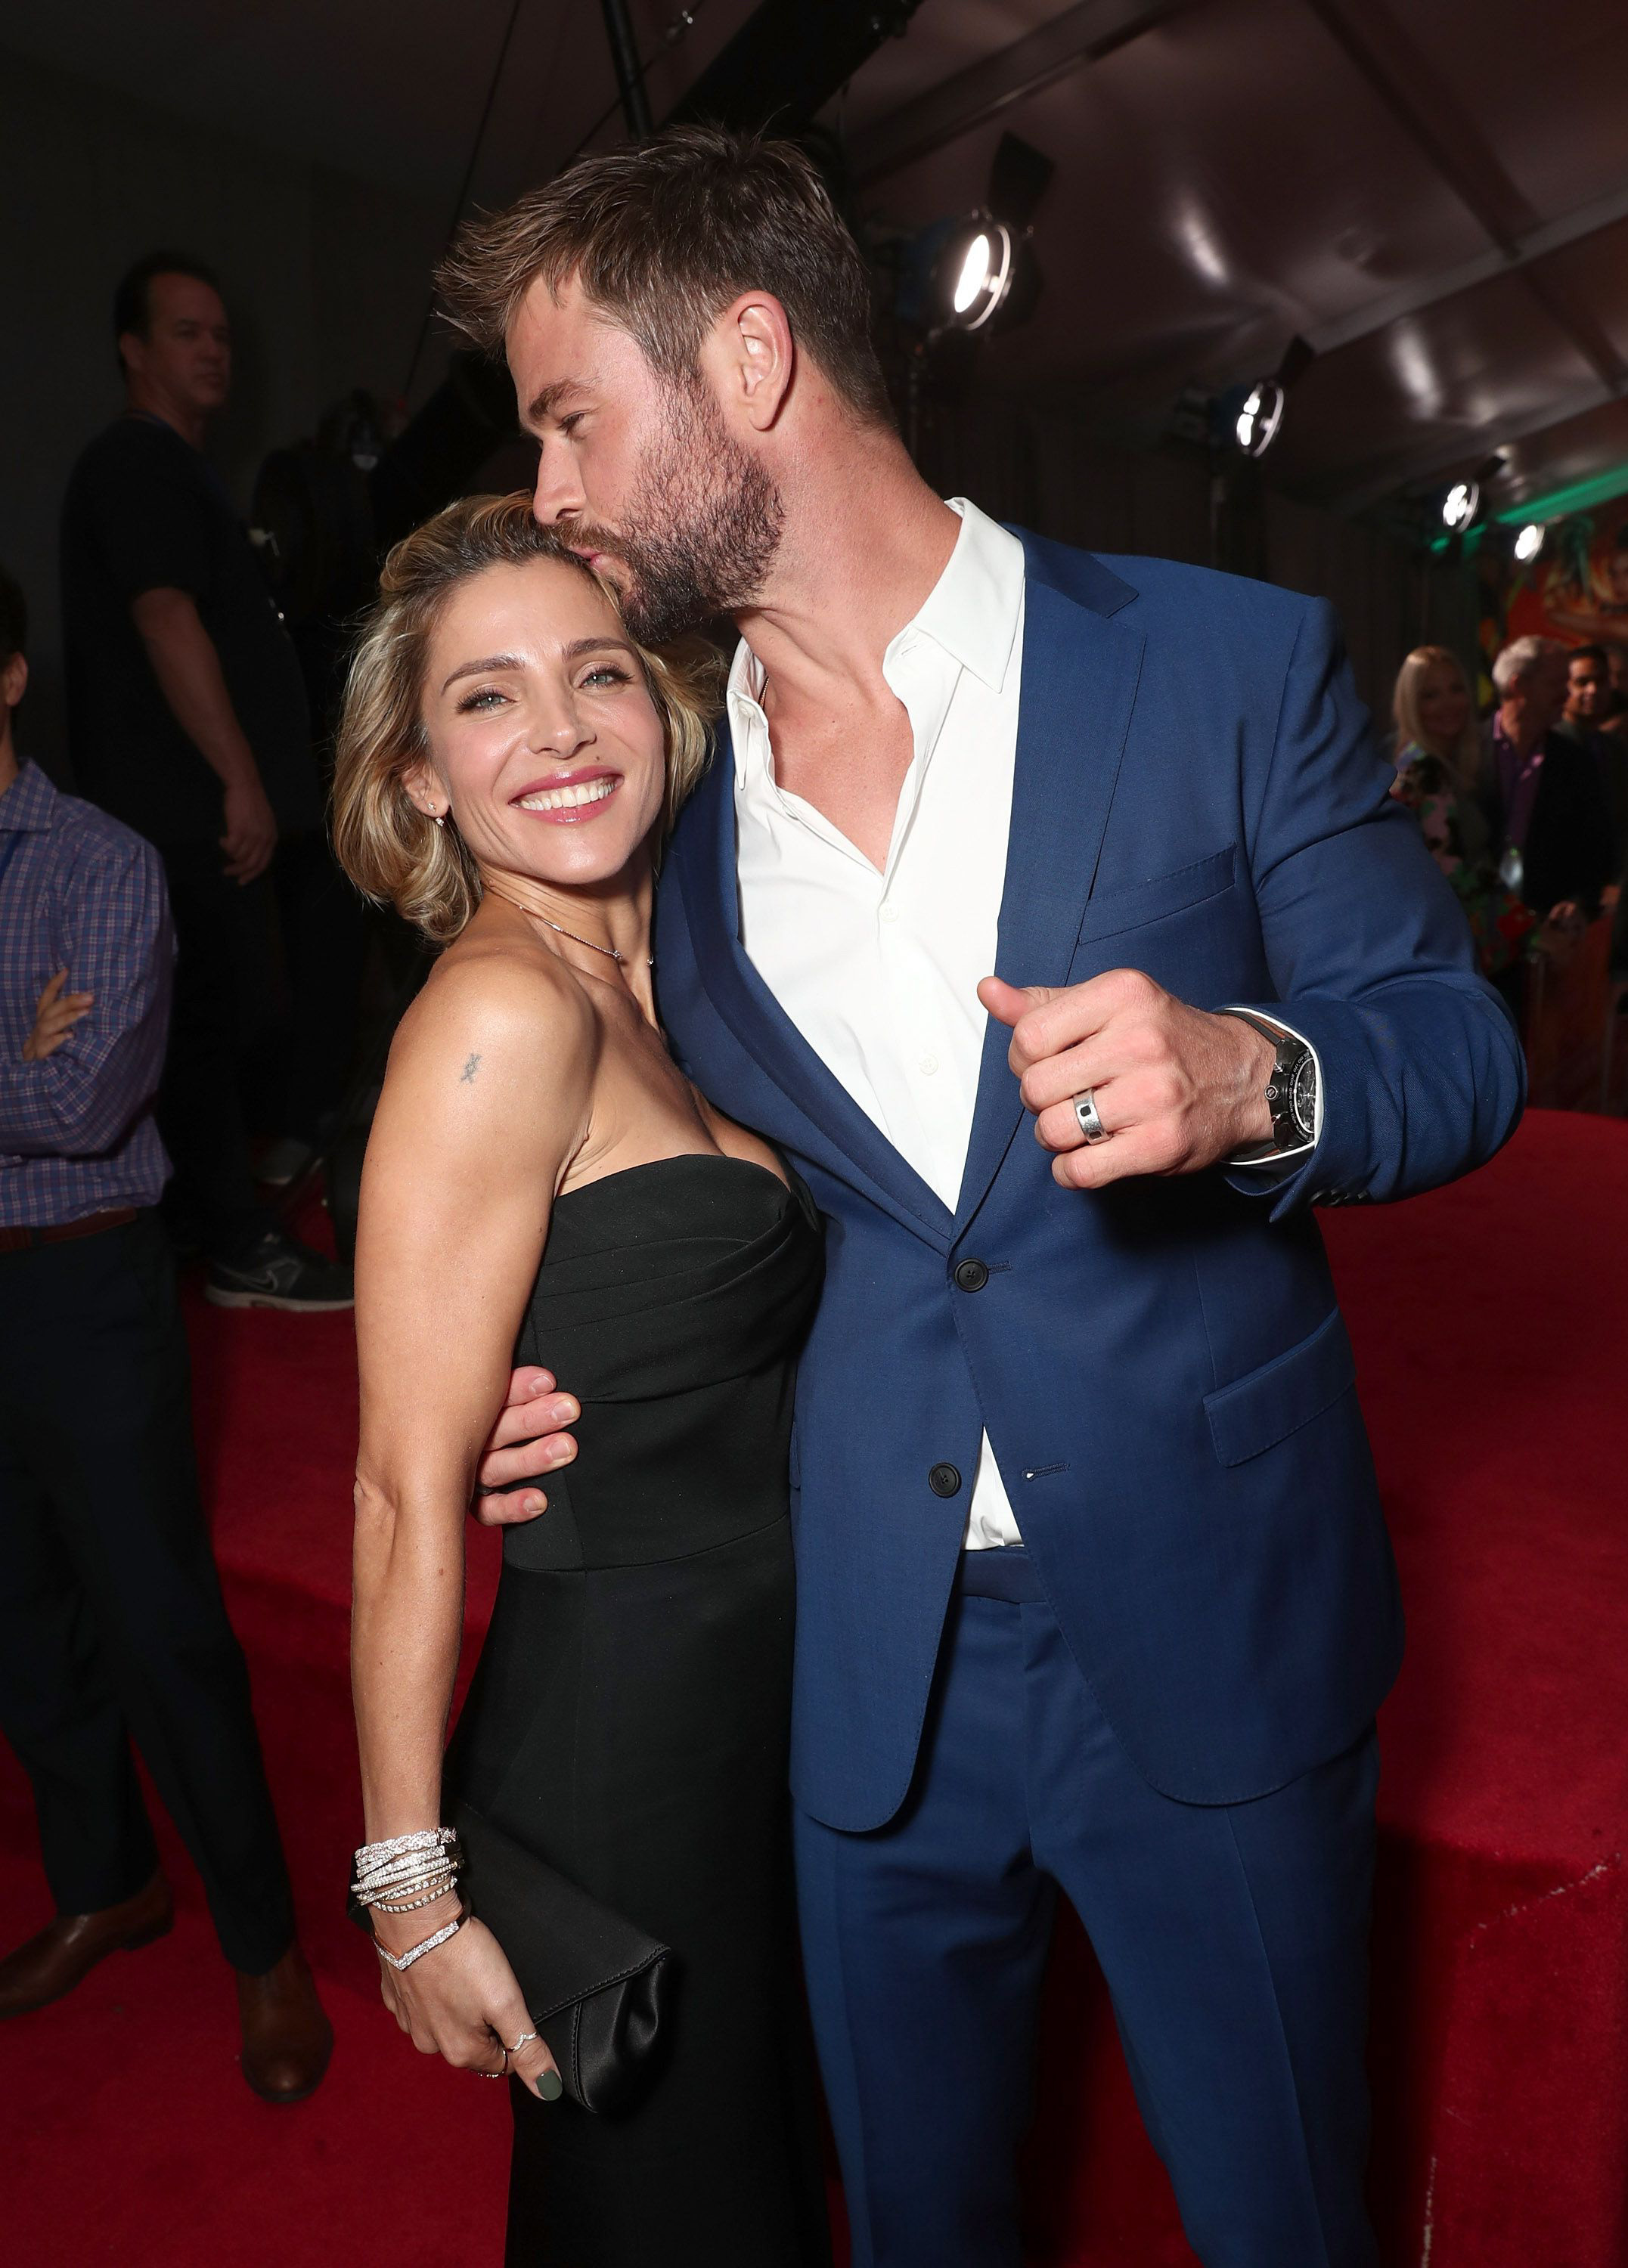 12.Chris Hemsworth - Age: 35Wife: Elsa Pataky, 43Age Difference: 8 yearsYears Together: 9Kids: 3